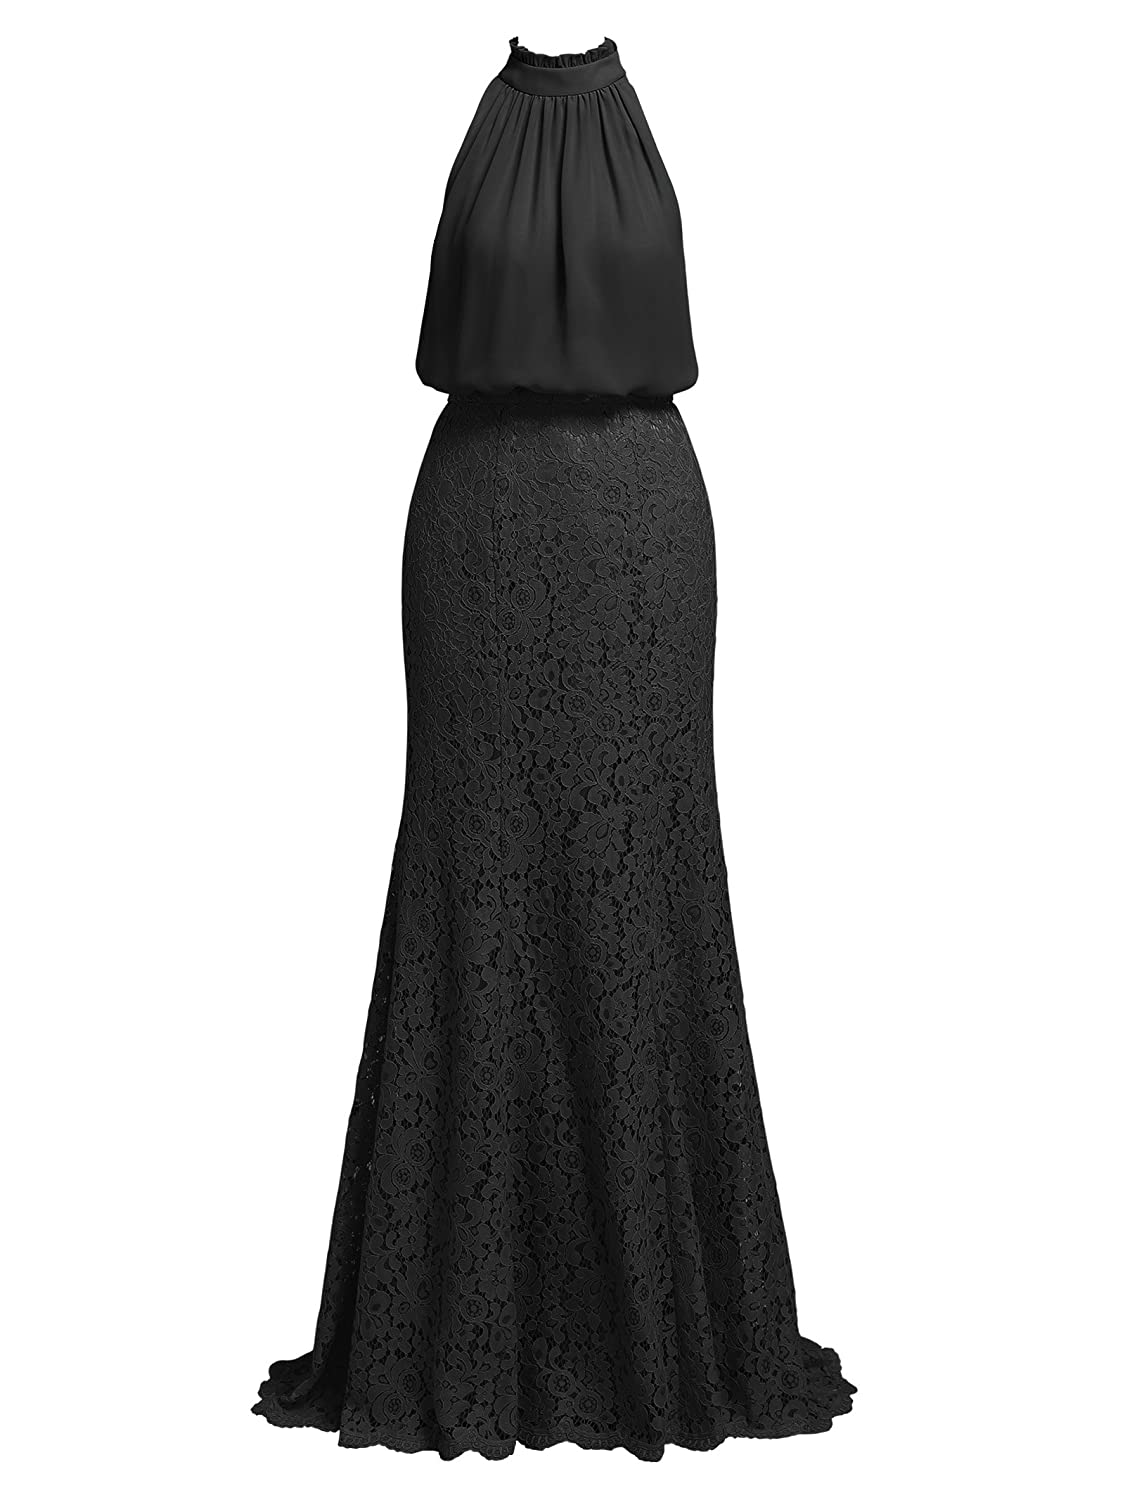 Alicepub Chiffon and Lace Formal Party Evening Dress Long Maxi ...